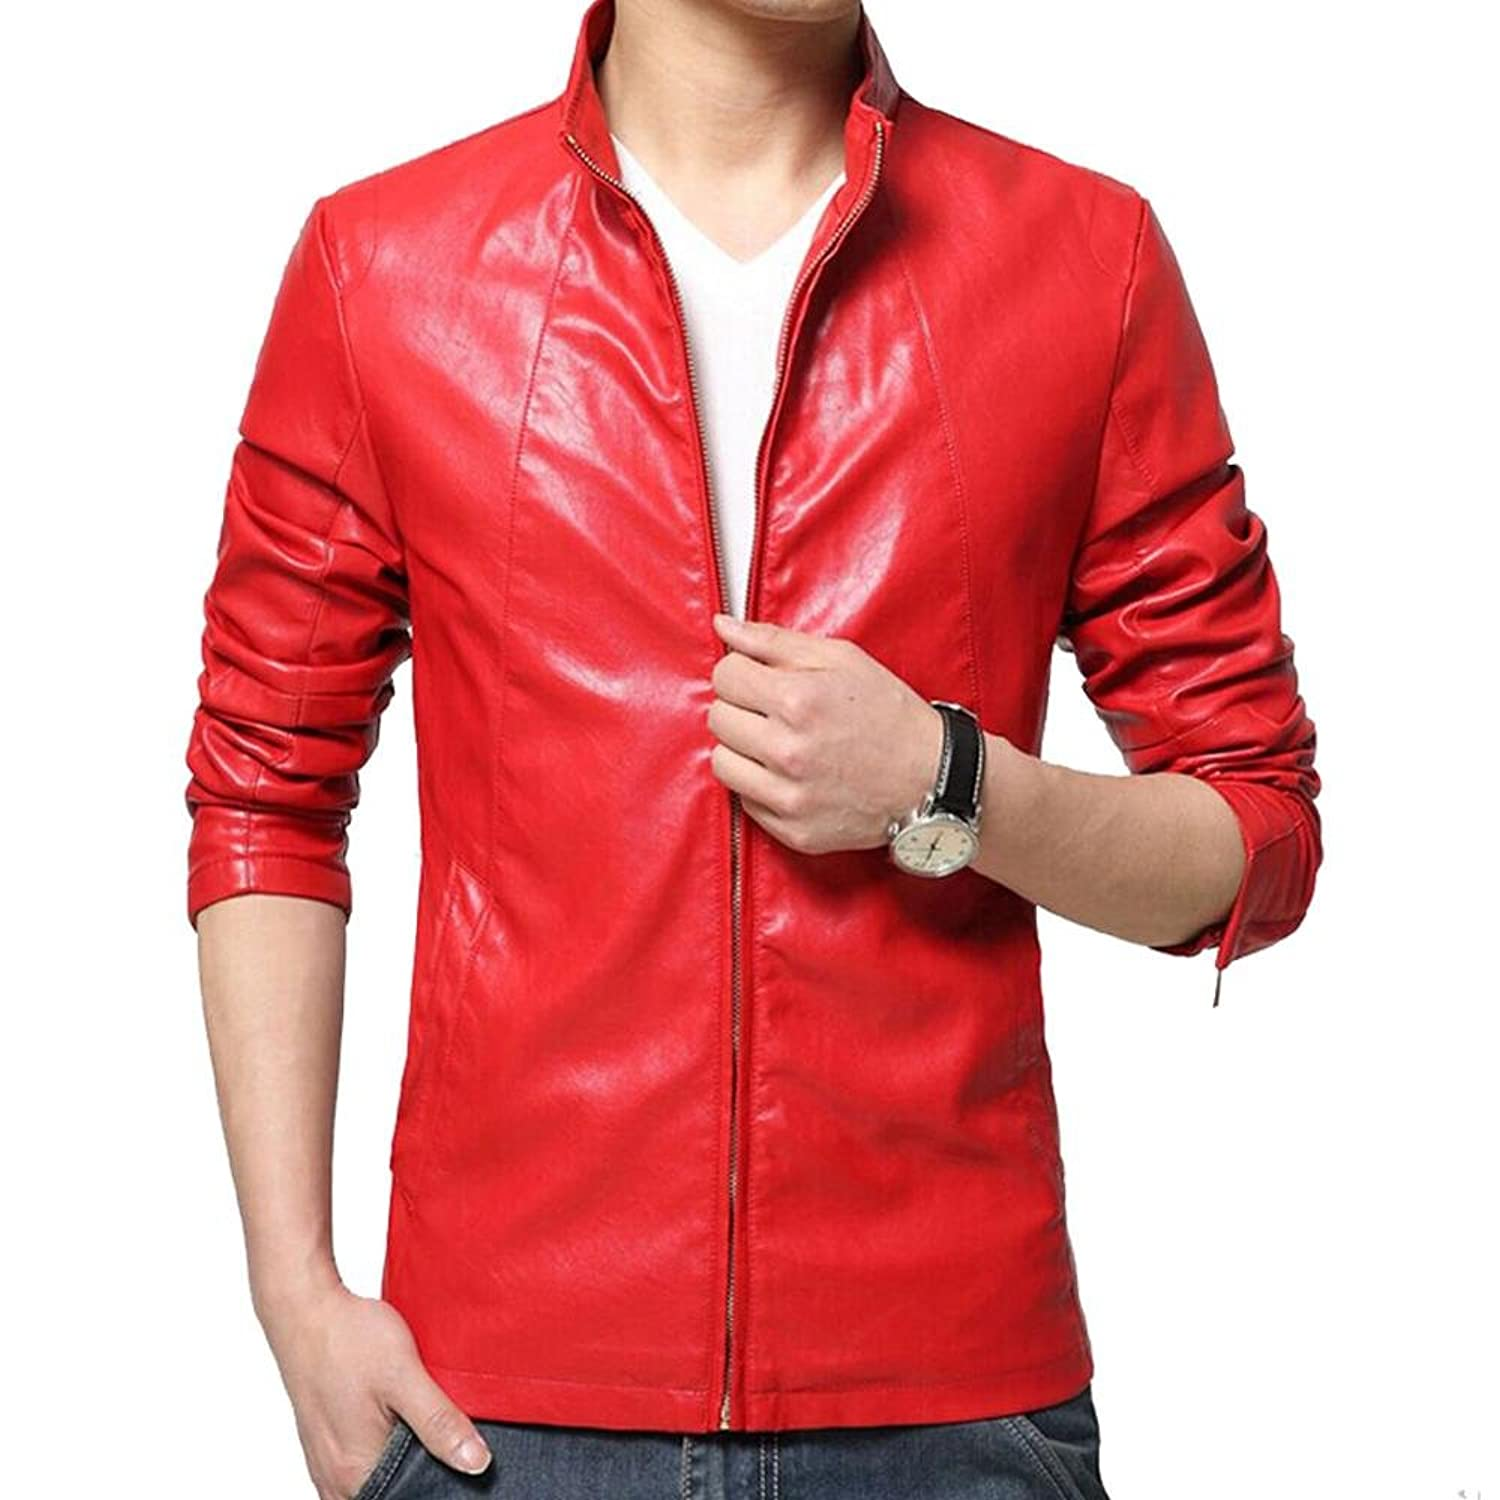 Hzcx Fashion Mens Stand Collar Washed Faux Leather Lined Casual Jackets